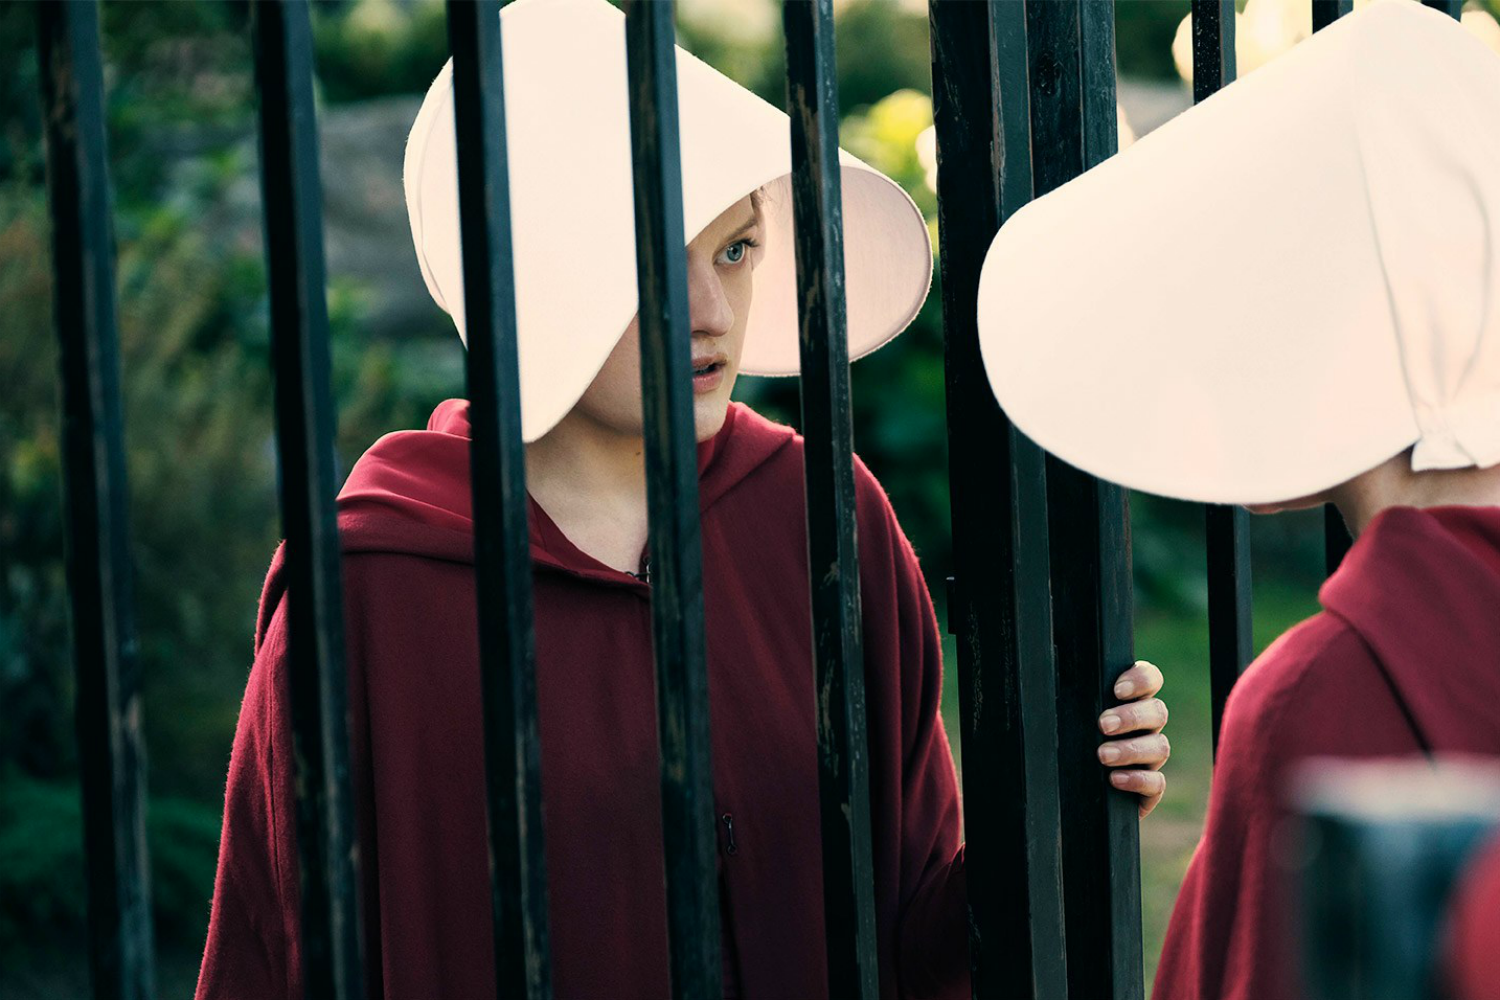 'Handmaid' wins 2nd season as Hulu unveils live-TV option